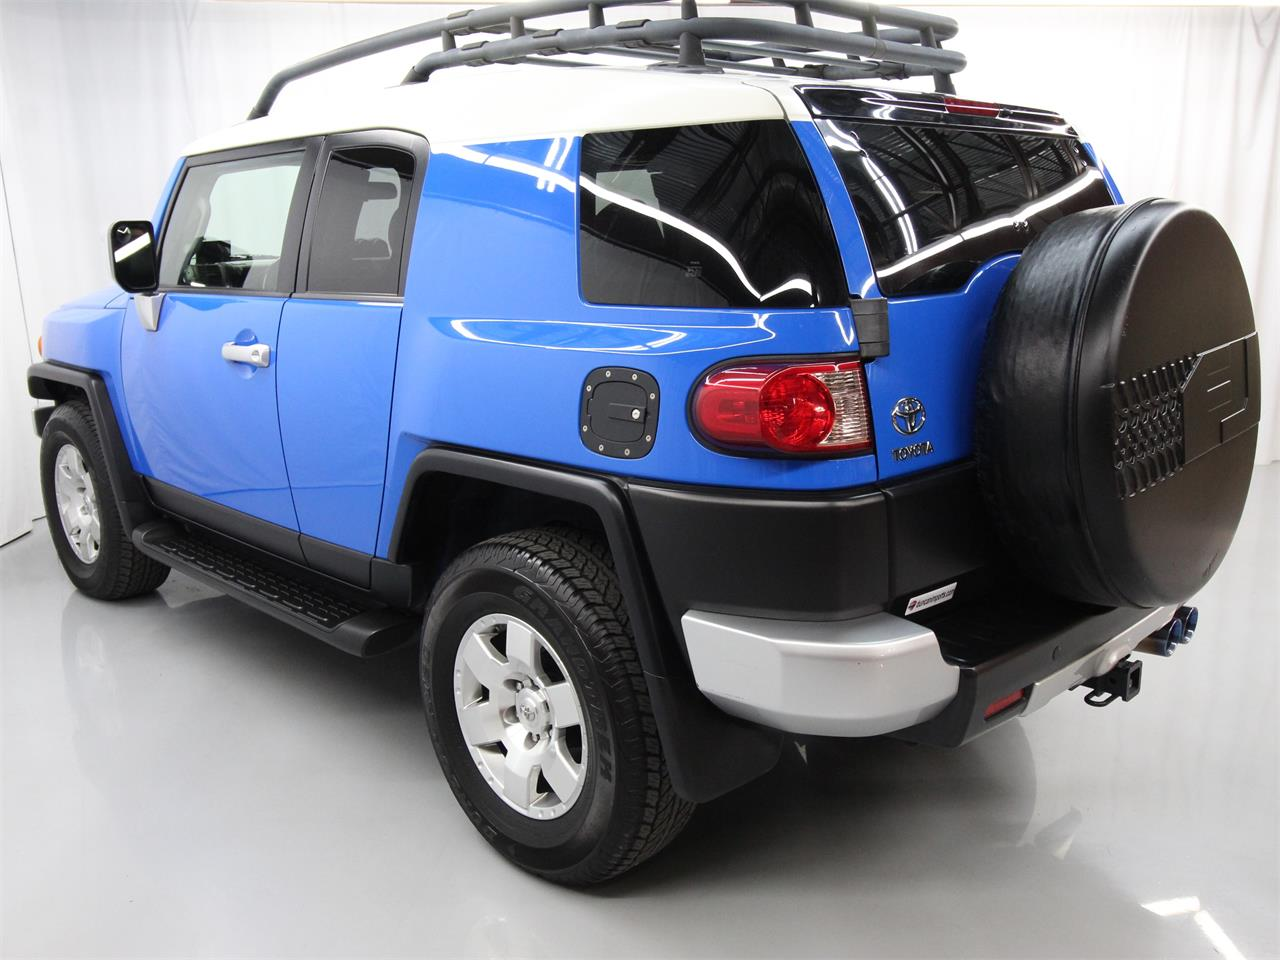 Large Picture of '08 FJ Cruiser located in Virginia - $24,997.00 - PY12